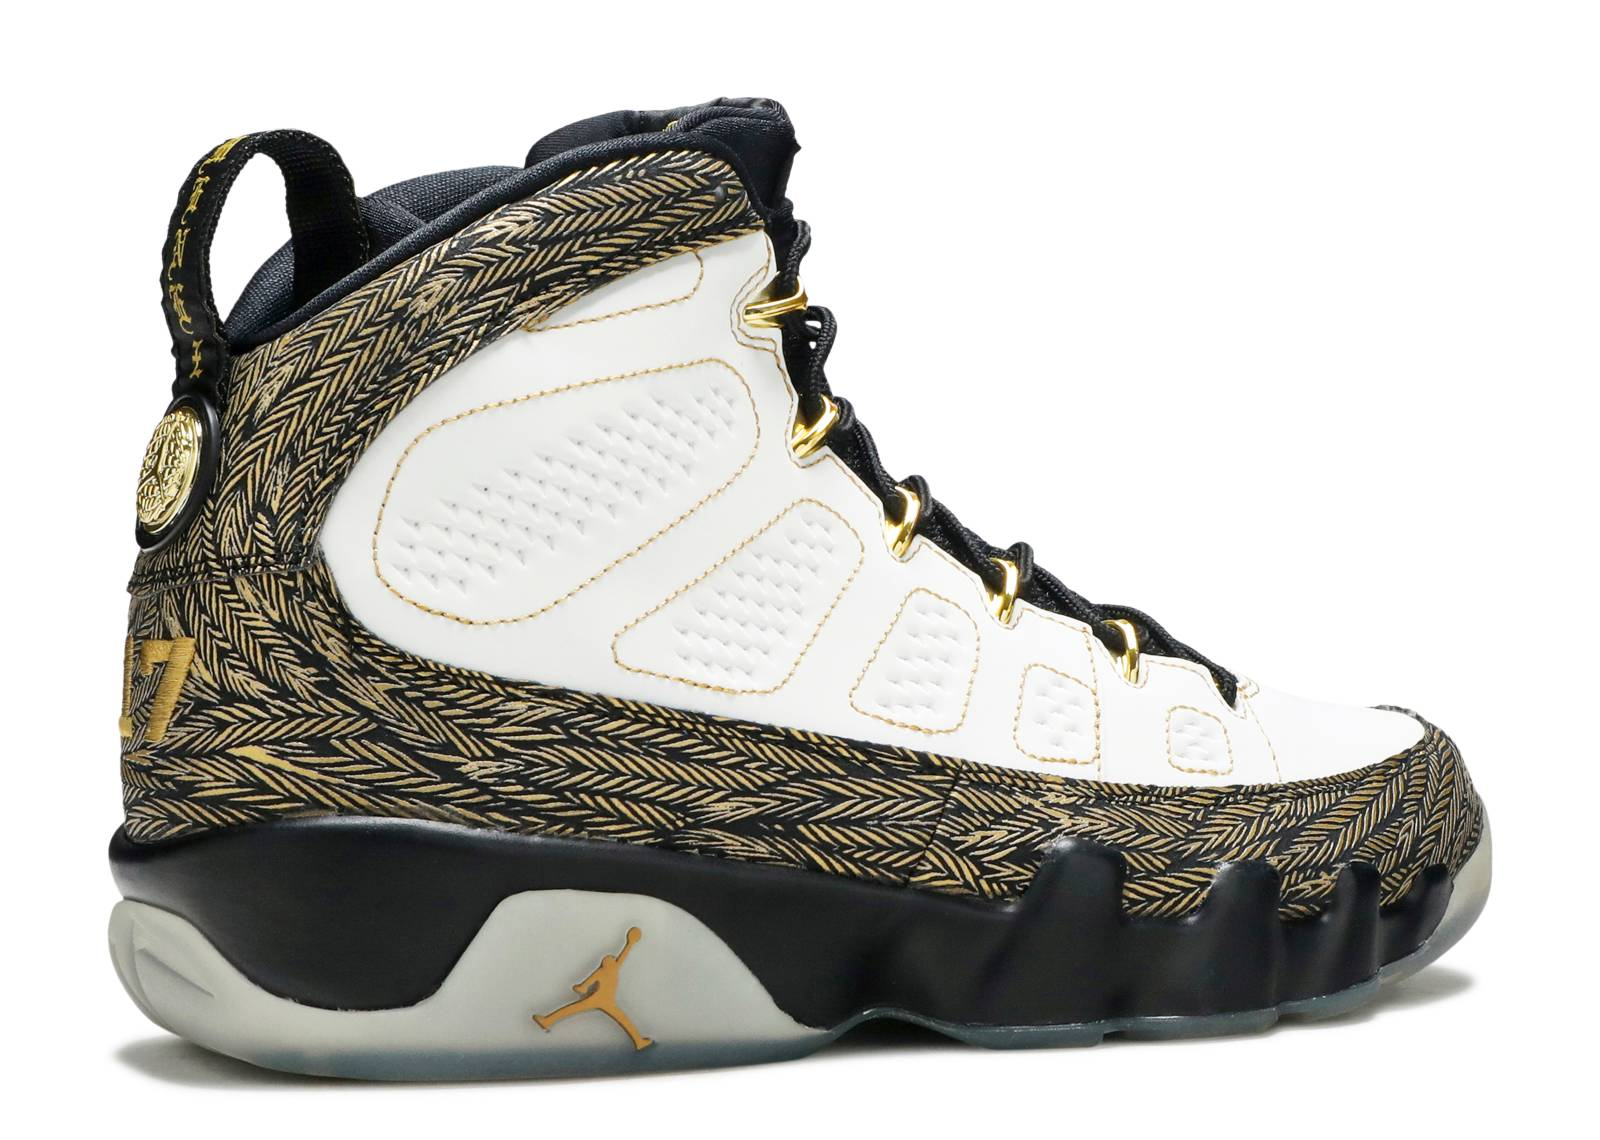 the latest c3cc0 b40da ... ireland air jordan 9 retro db doernbecher air jordan 580892 170 white  metallic gold black flight